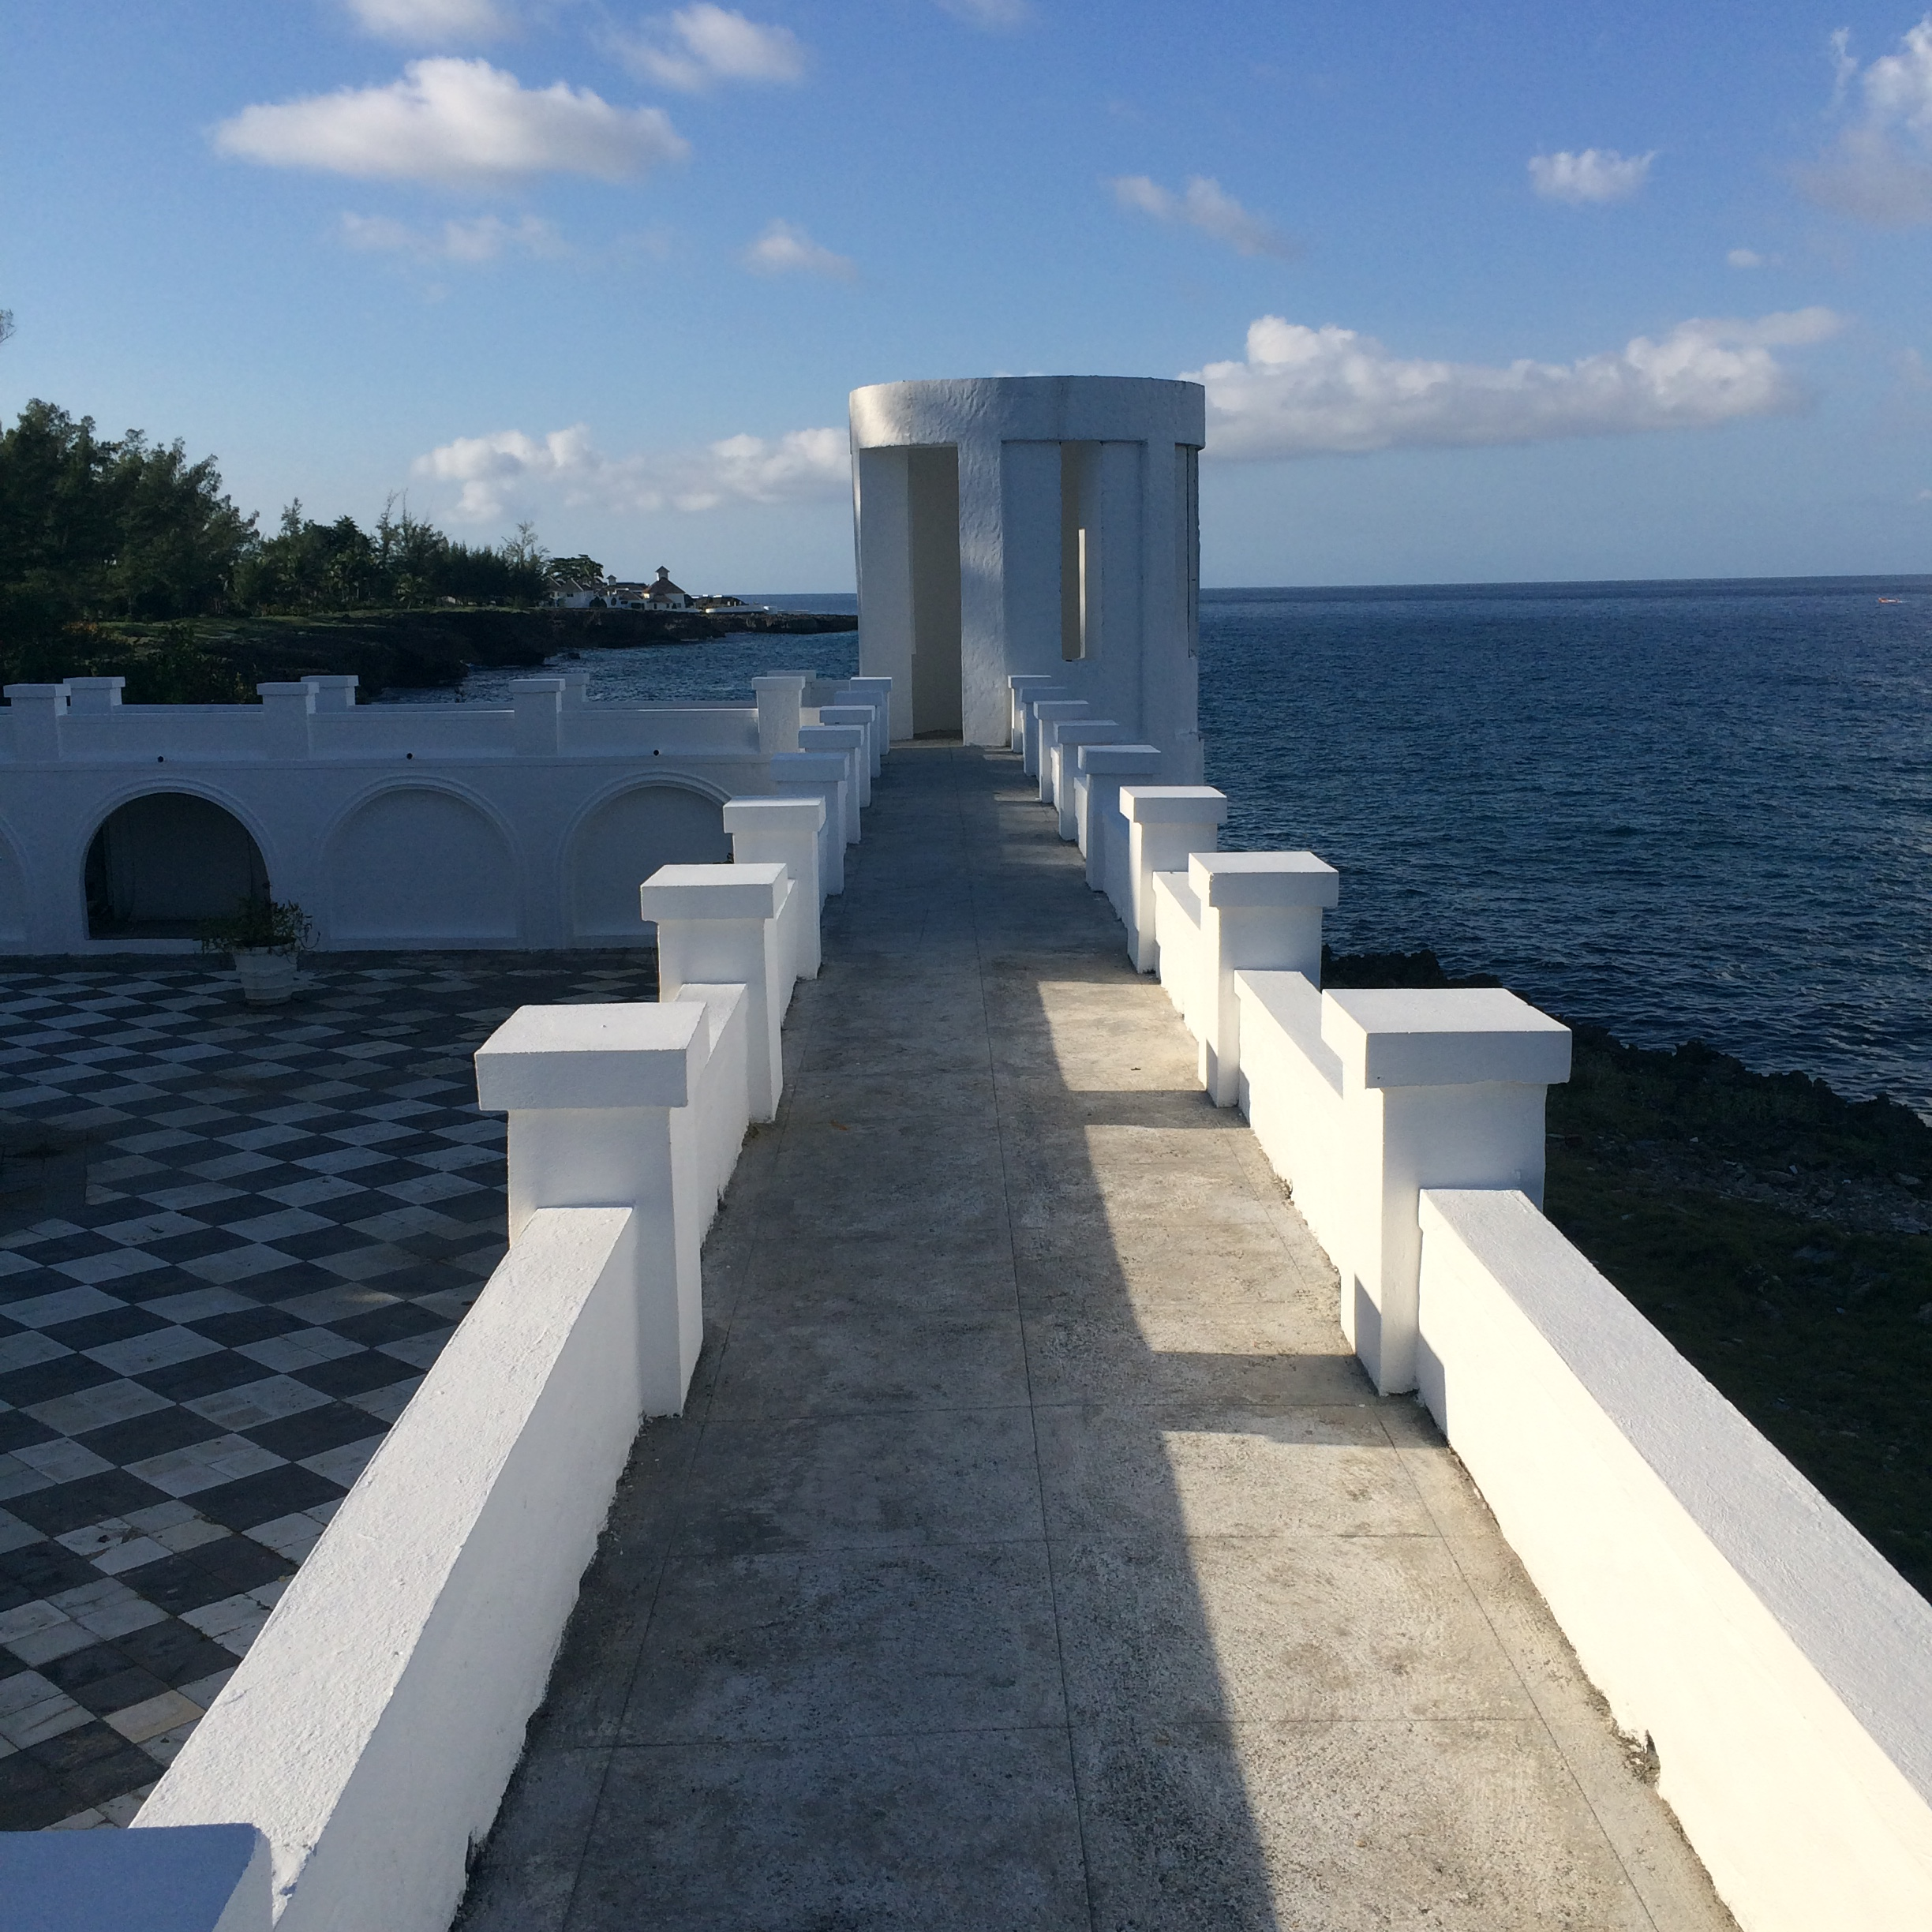 Photo by Tevra Francis - Trident Castle, Port Antonio, Jamaica